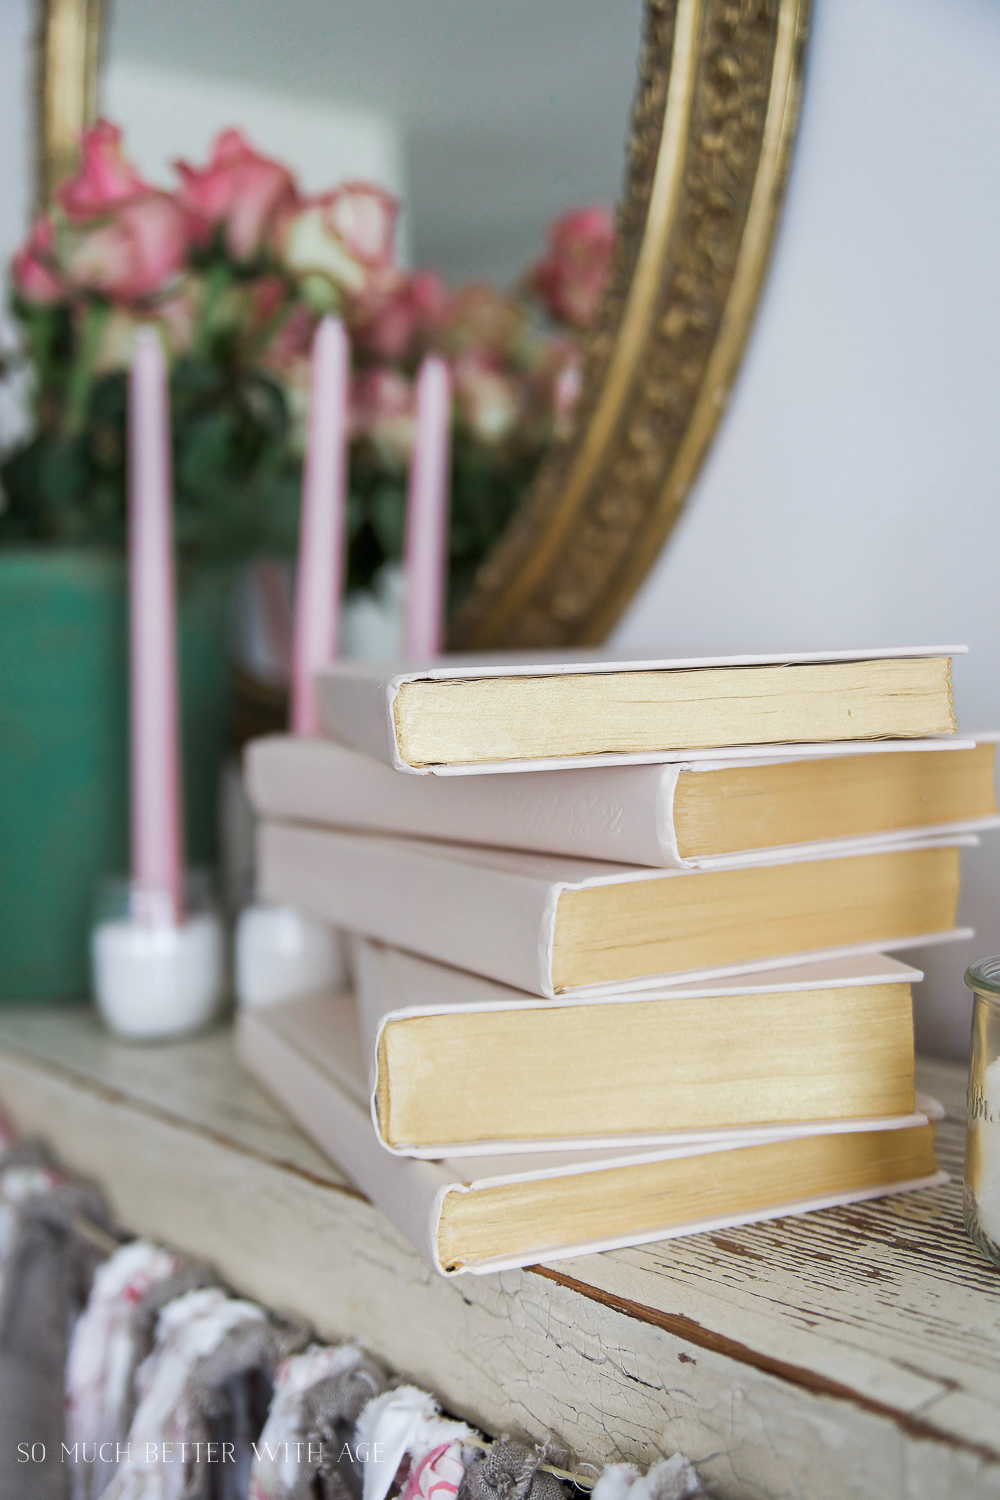 Painted Pink and Metallic Gold Books for Valentine's Day/ pink books and candles- So Much Better With Age